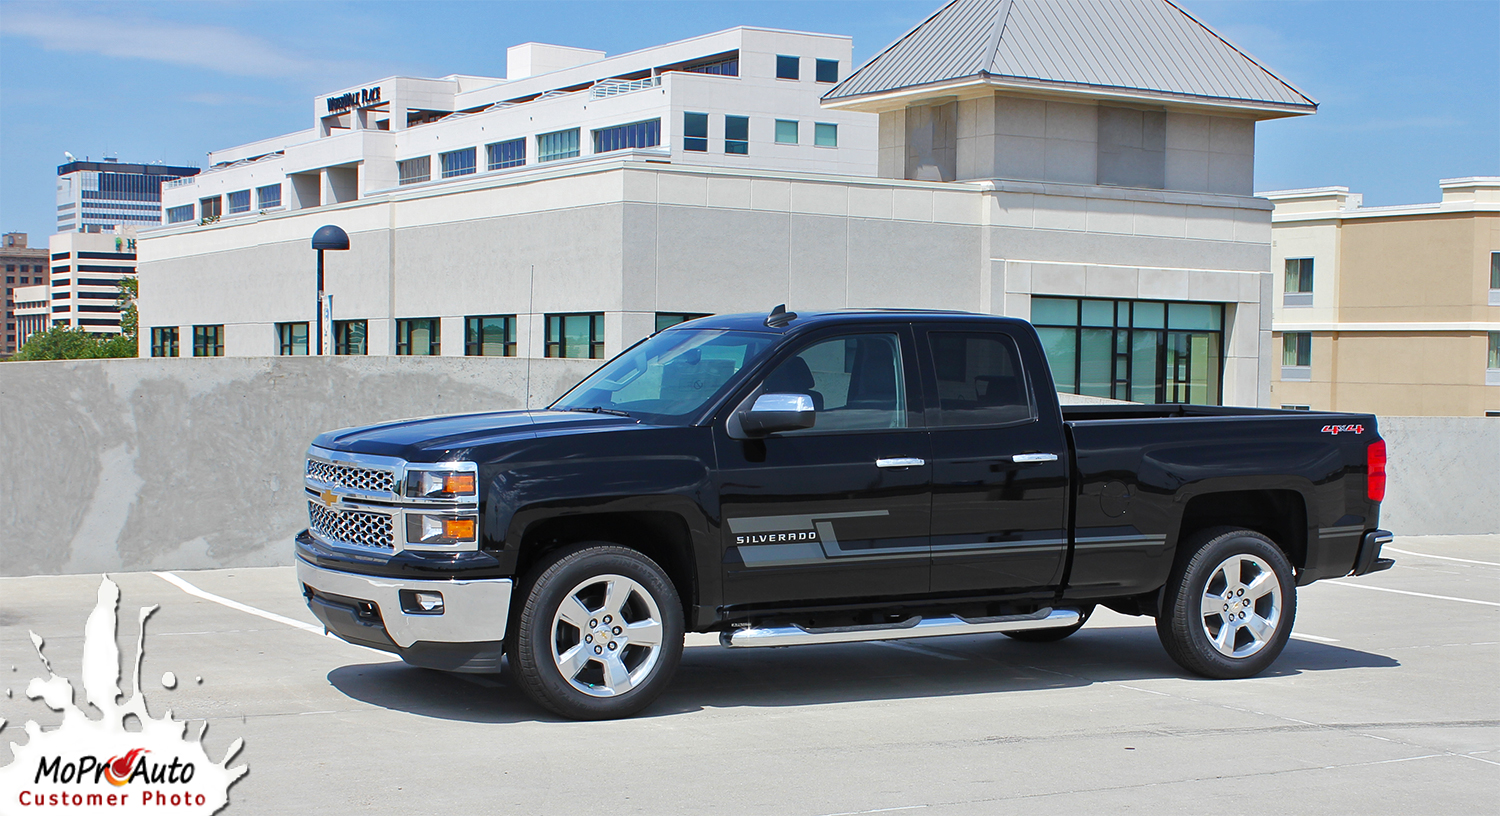 2014 2015 2016 2017 2018 SHADOW - CHEVY SILVERADO - MoProAuto Pro Design Series Vinyl Graphics, Stripes and Decals Kit